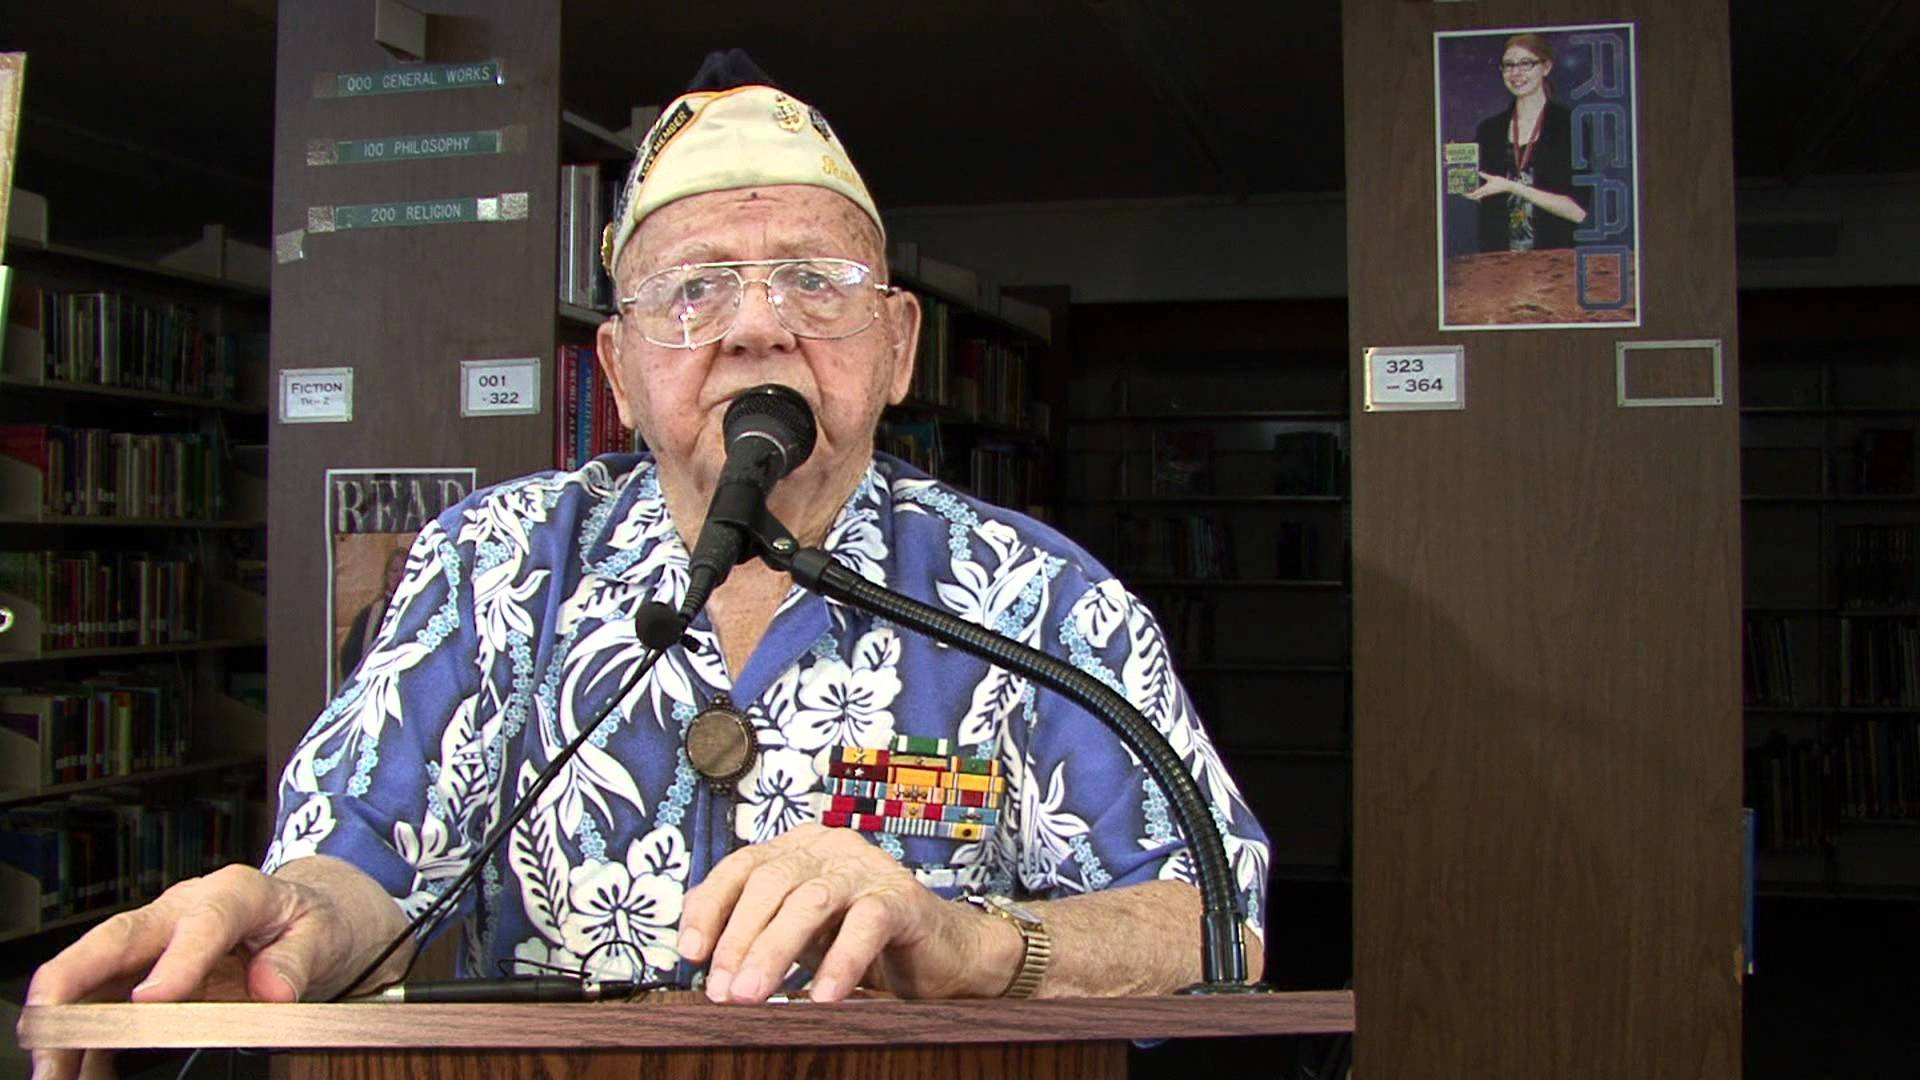 5a26c7a83a78d  maxresdefault - Old Pearl Harbor Survivor Makes Amazing Appearance, Wins The Hearts Of Over 54,000 Audience